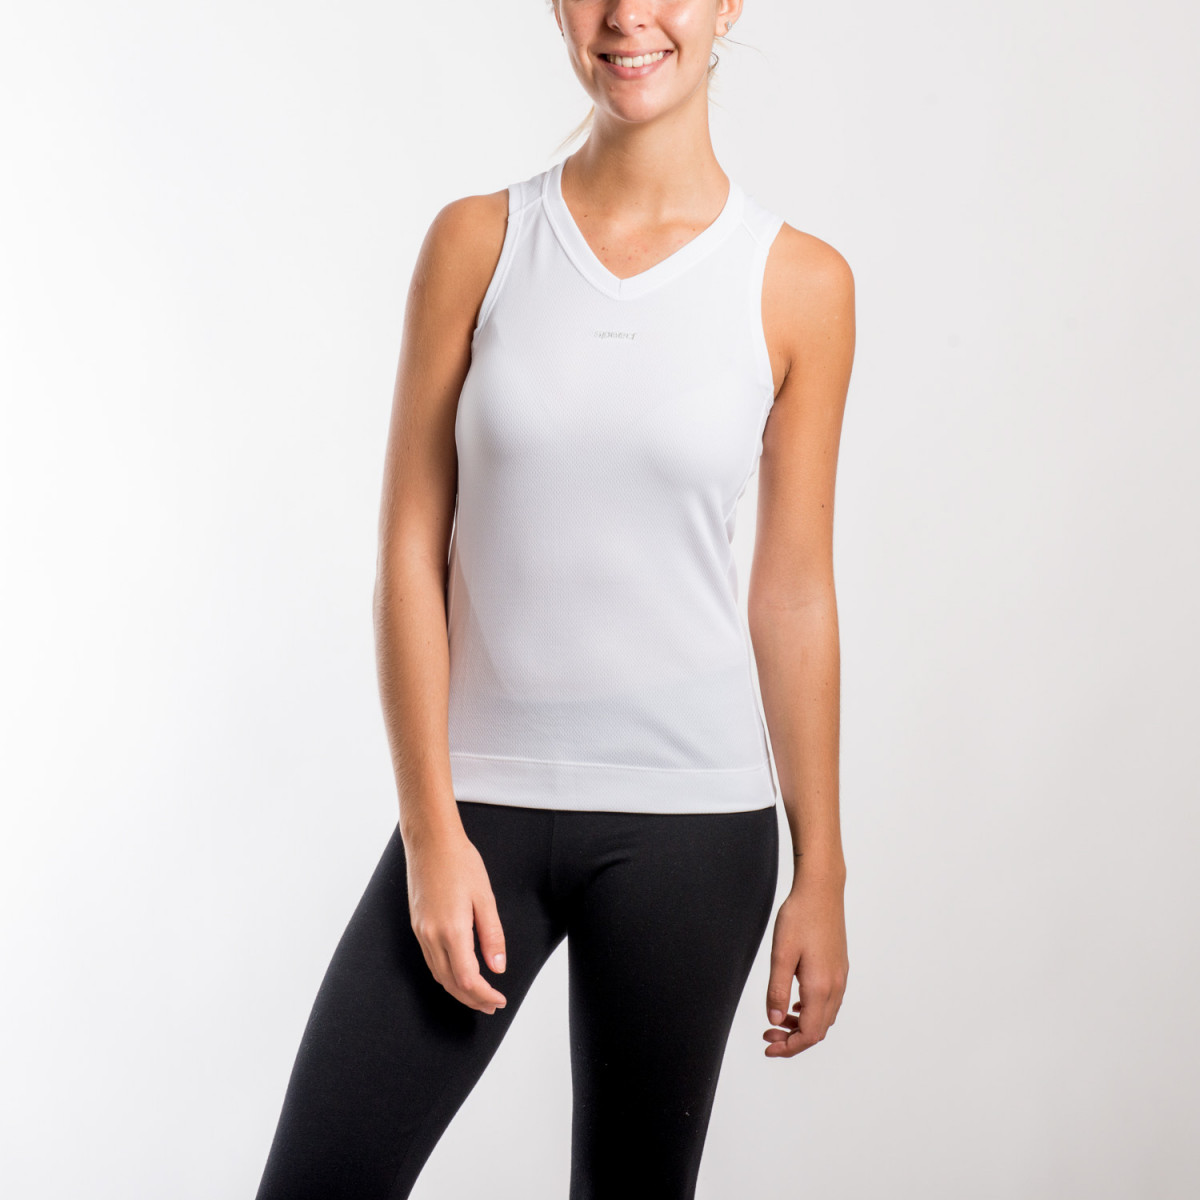 MUSCULOSA SPEED DRYWEAR